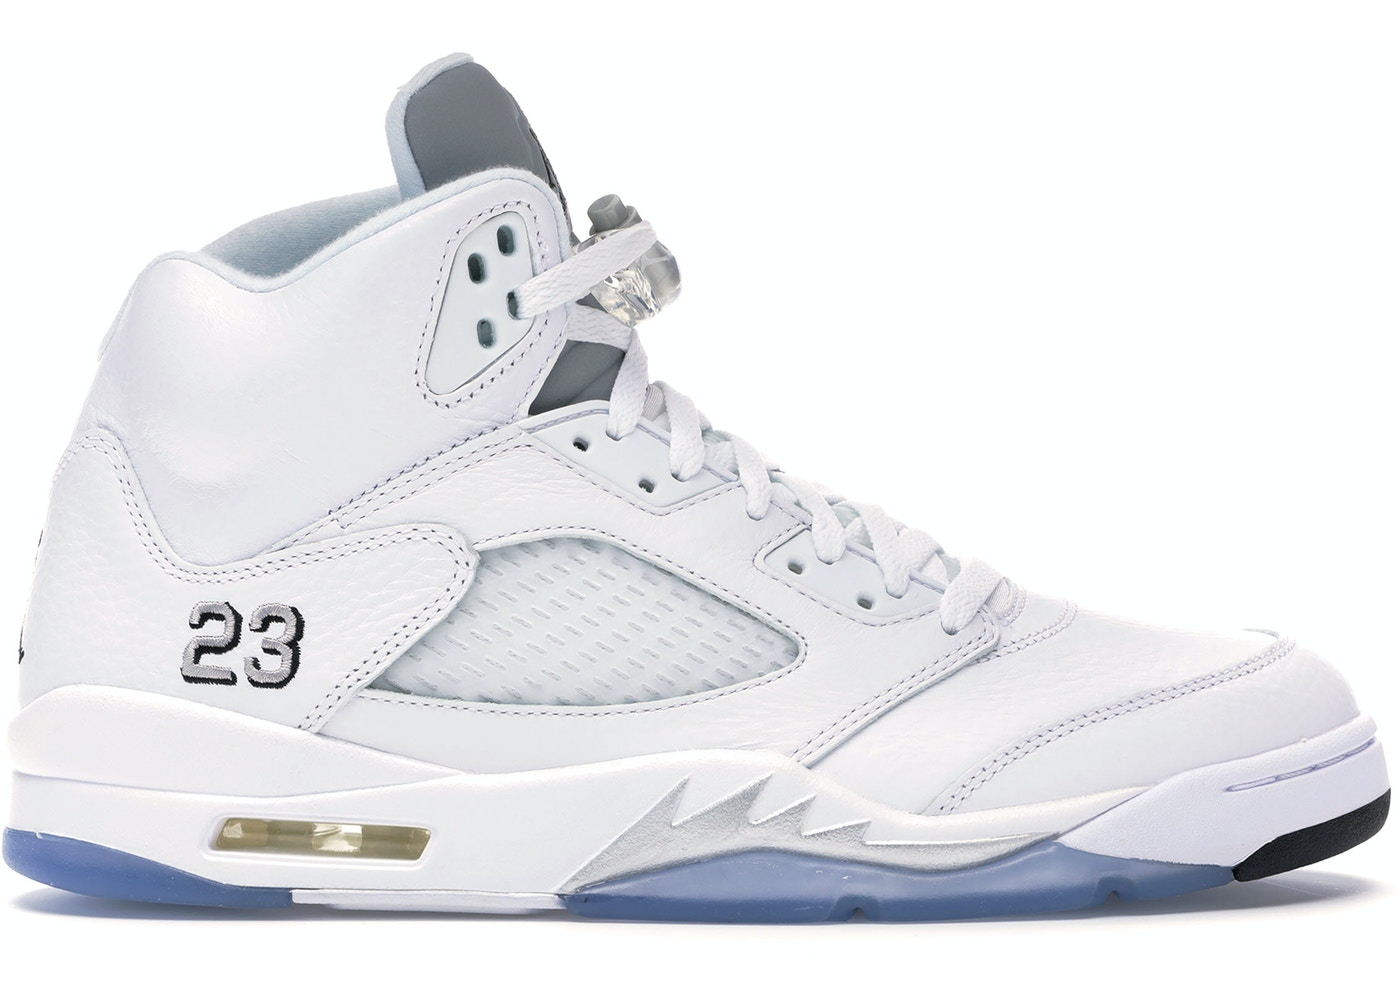 sports shoes cc5b3 7cae8 Jordan 5 Retro Metallic White (2015)